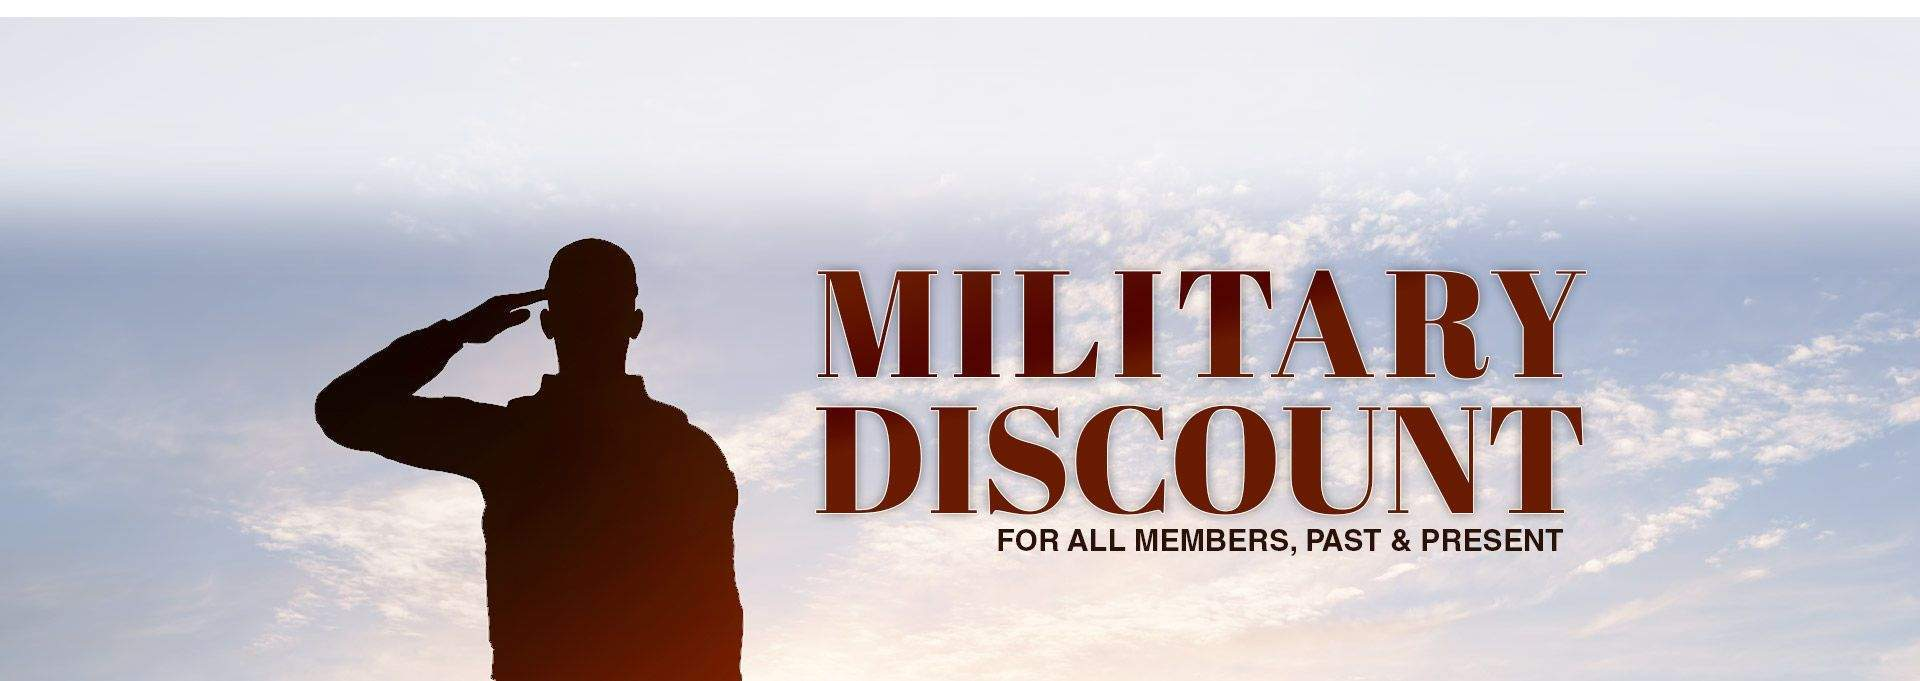 We Give Military Discounts. Thank You!